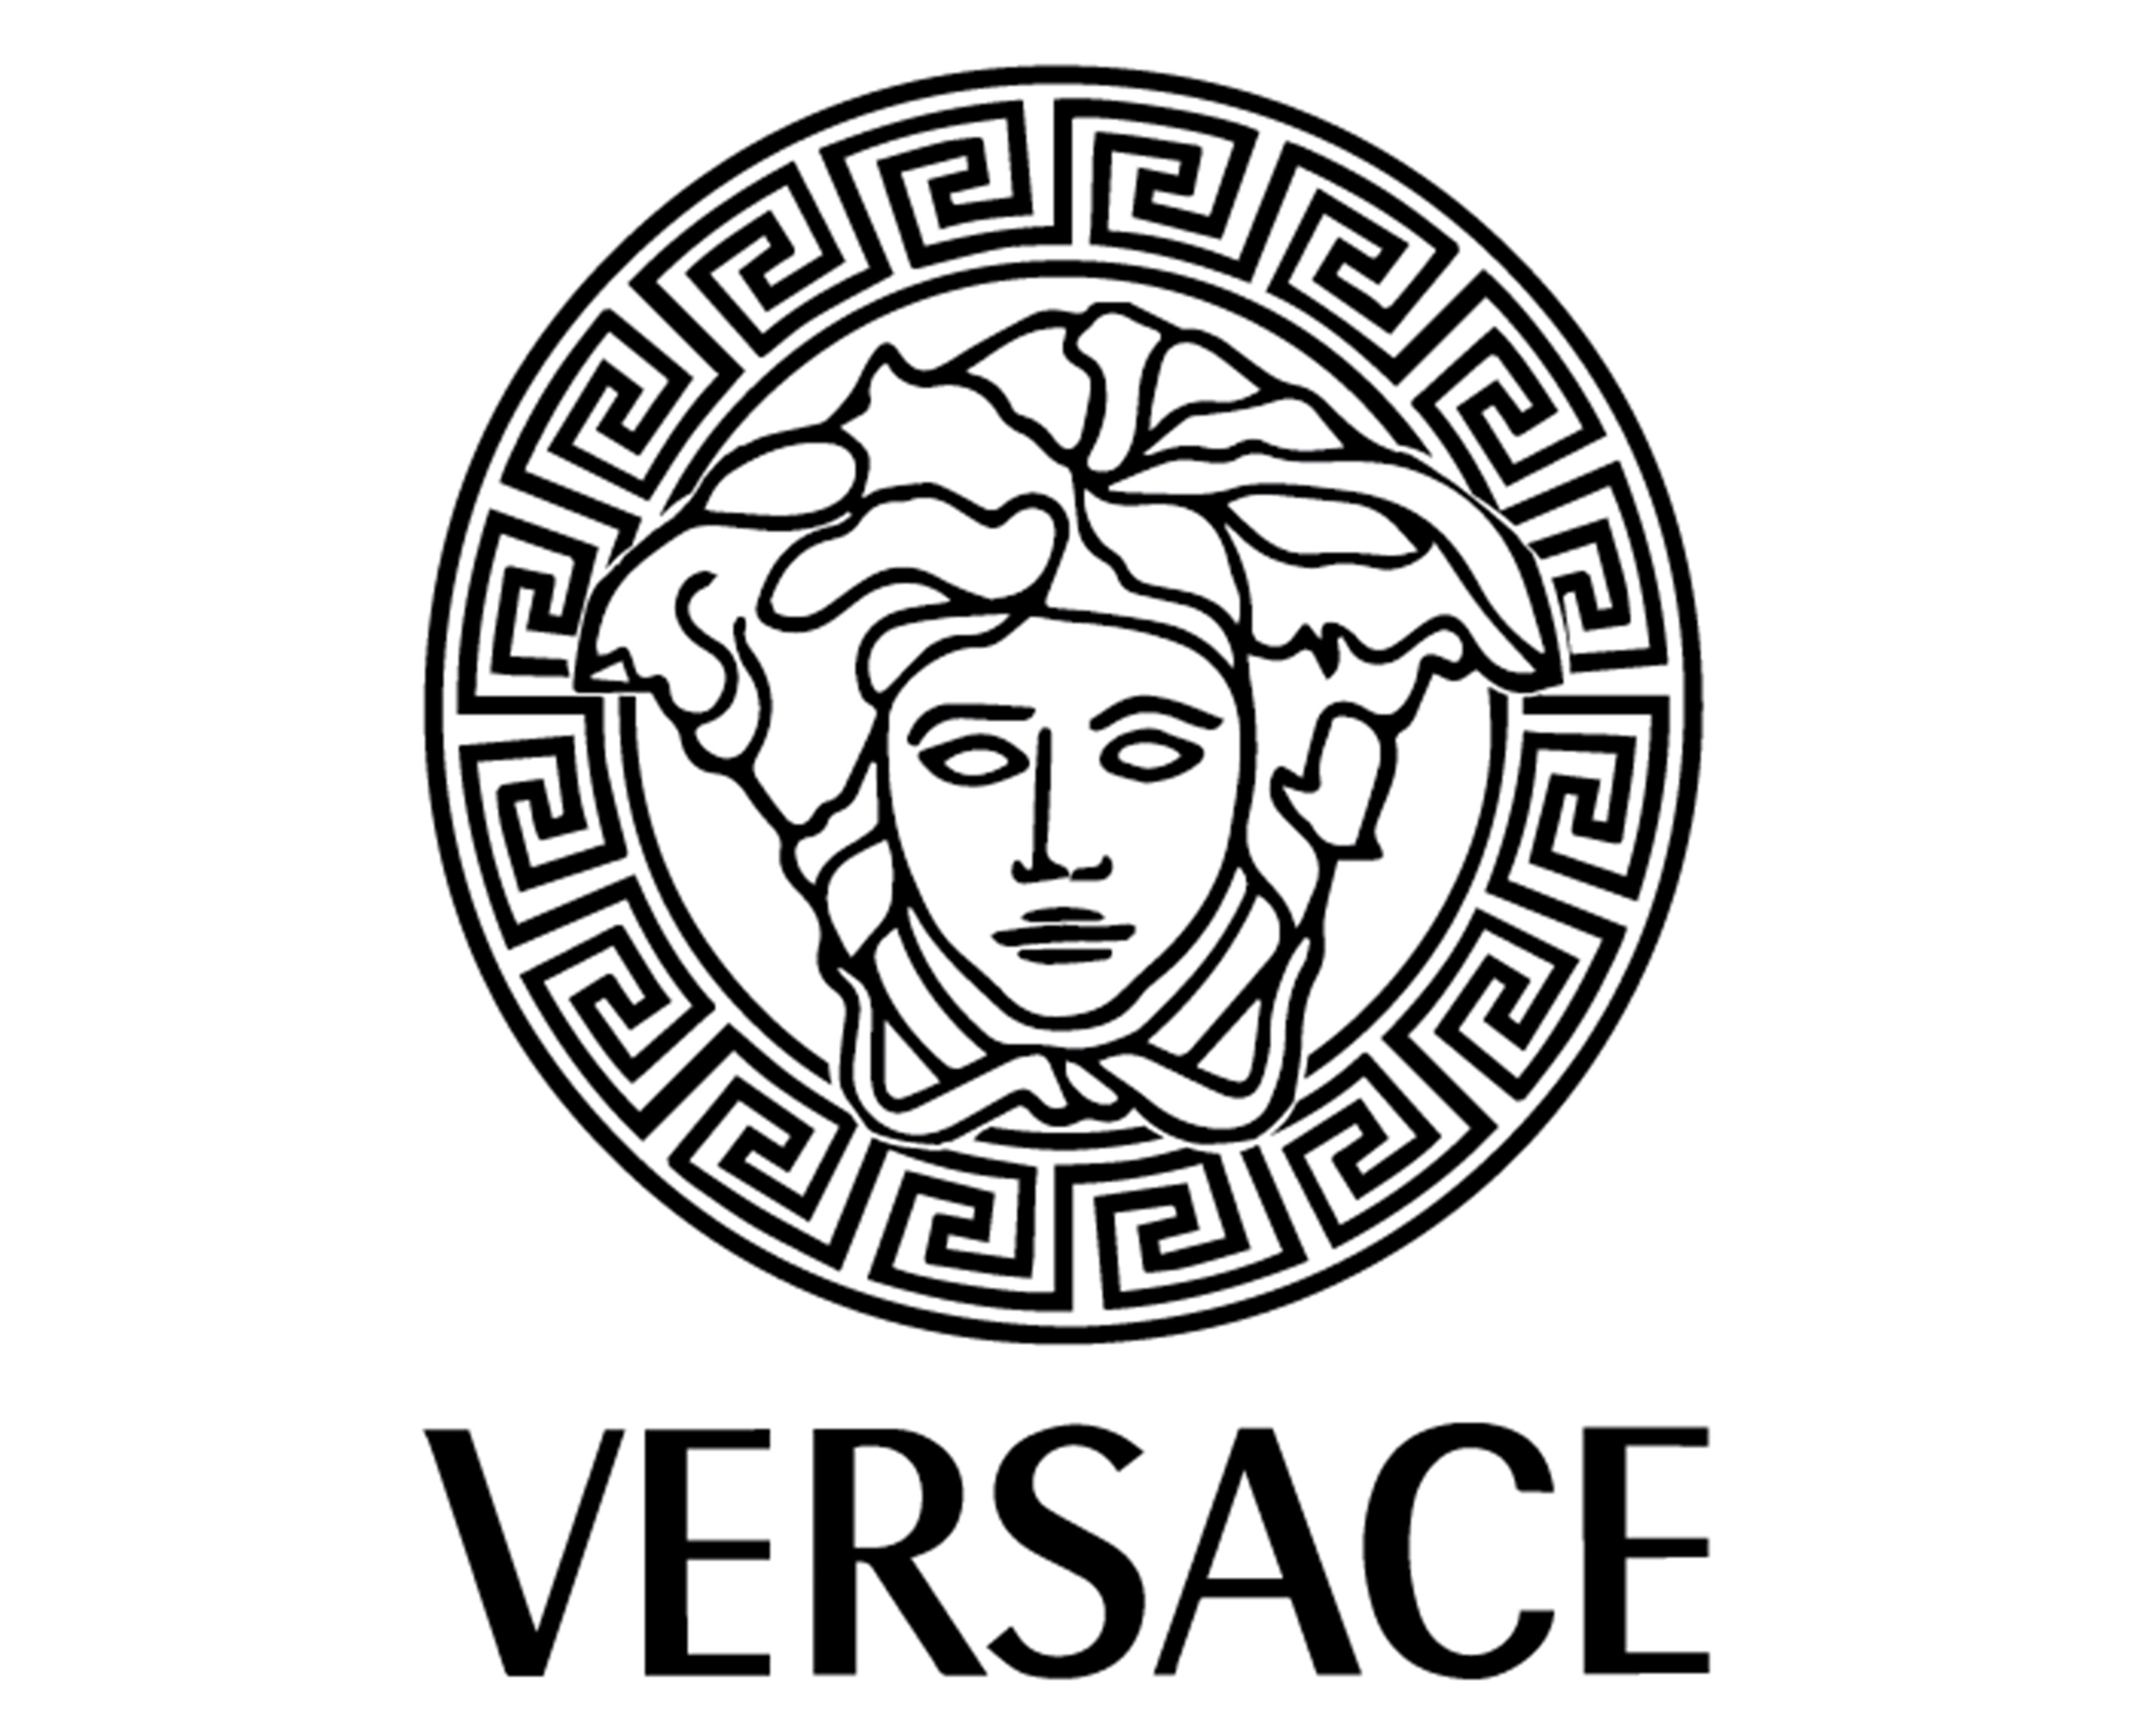 Versace Logo - VERSACE LOGO PAINTING STENCIL SIZE PACK *HIGH QUALITY* – ONE15